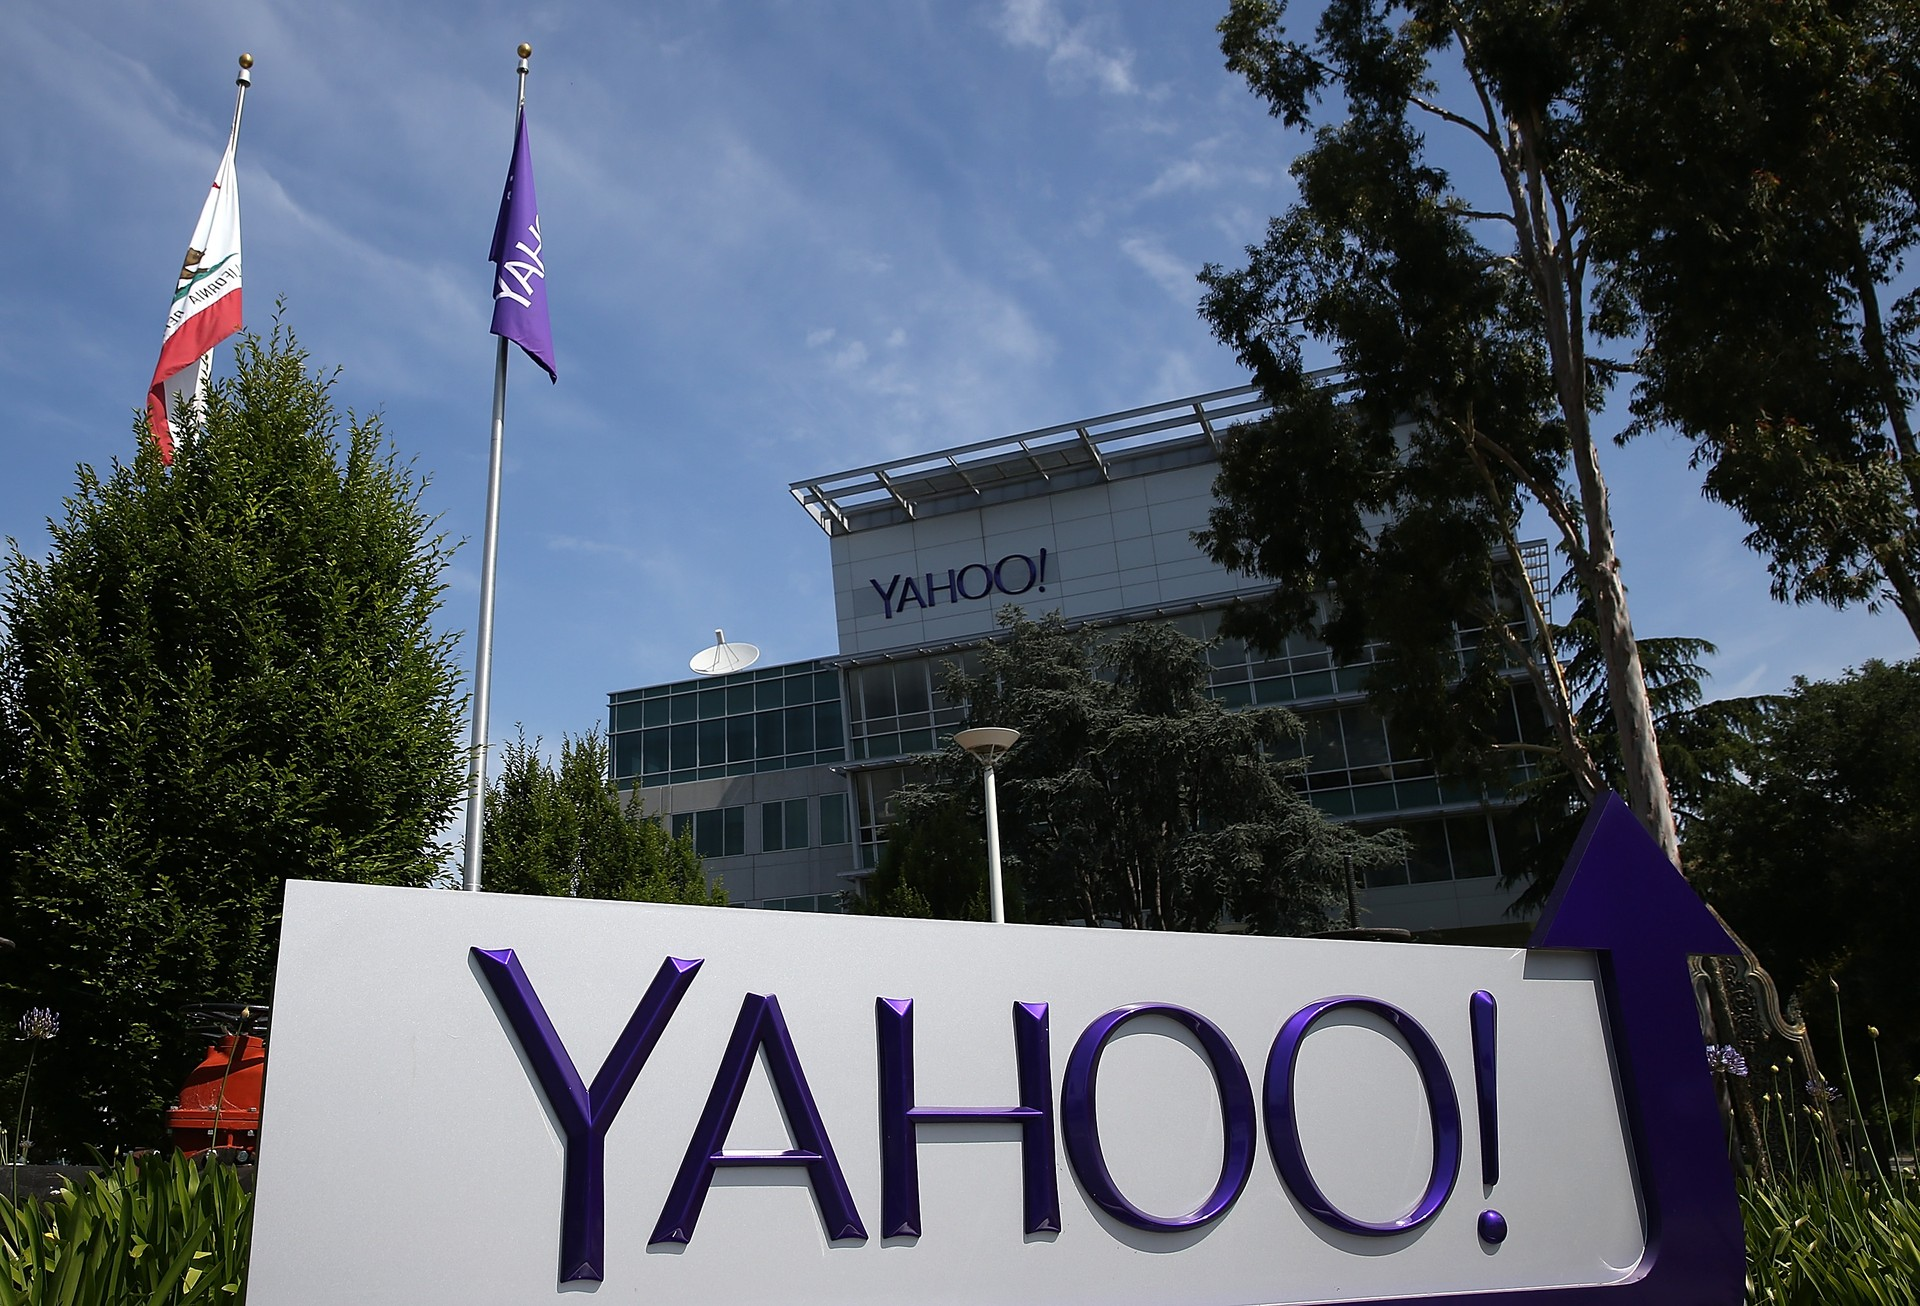 Sede do Yahoo em Sunnyvale, na Califórnia (Foto: Getty)